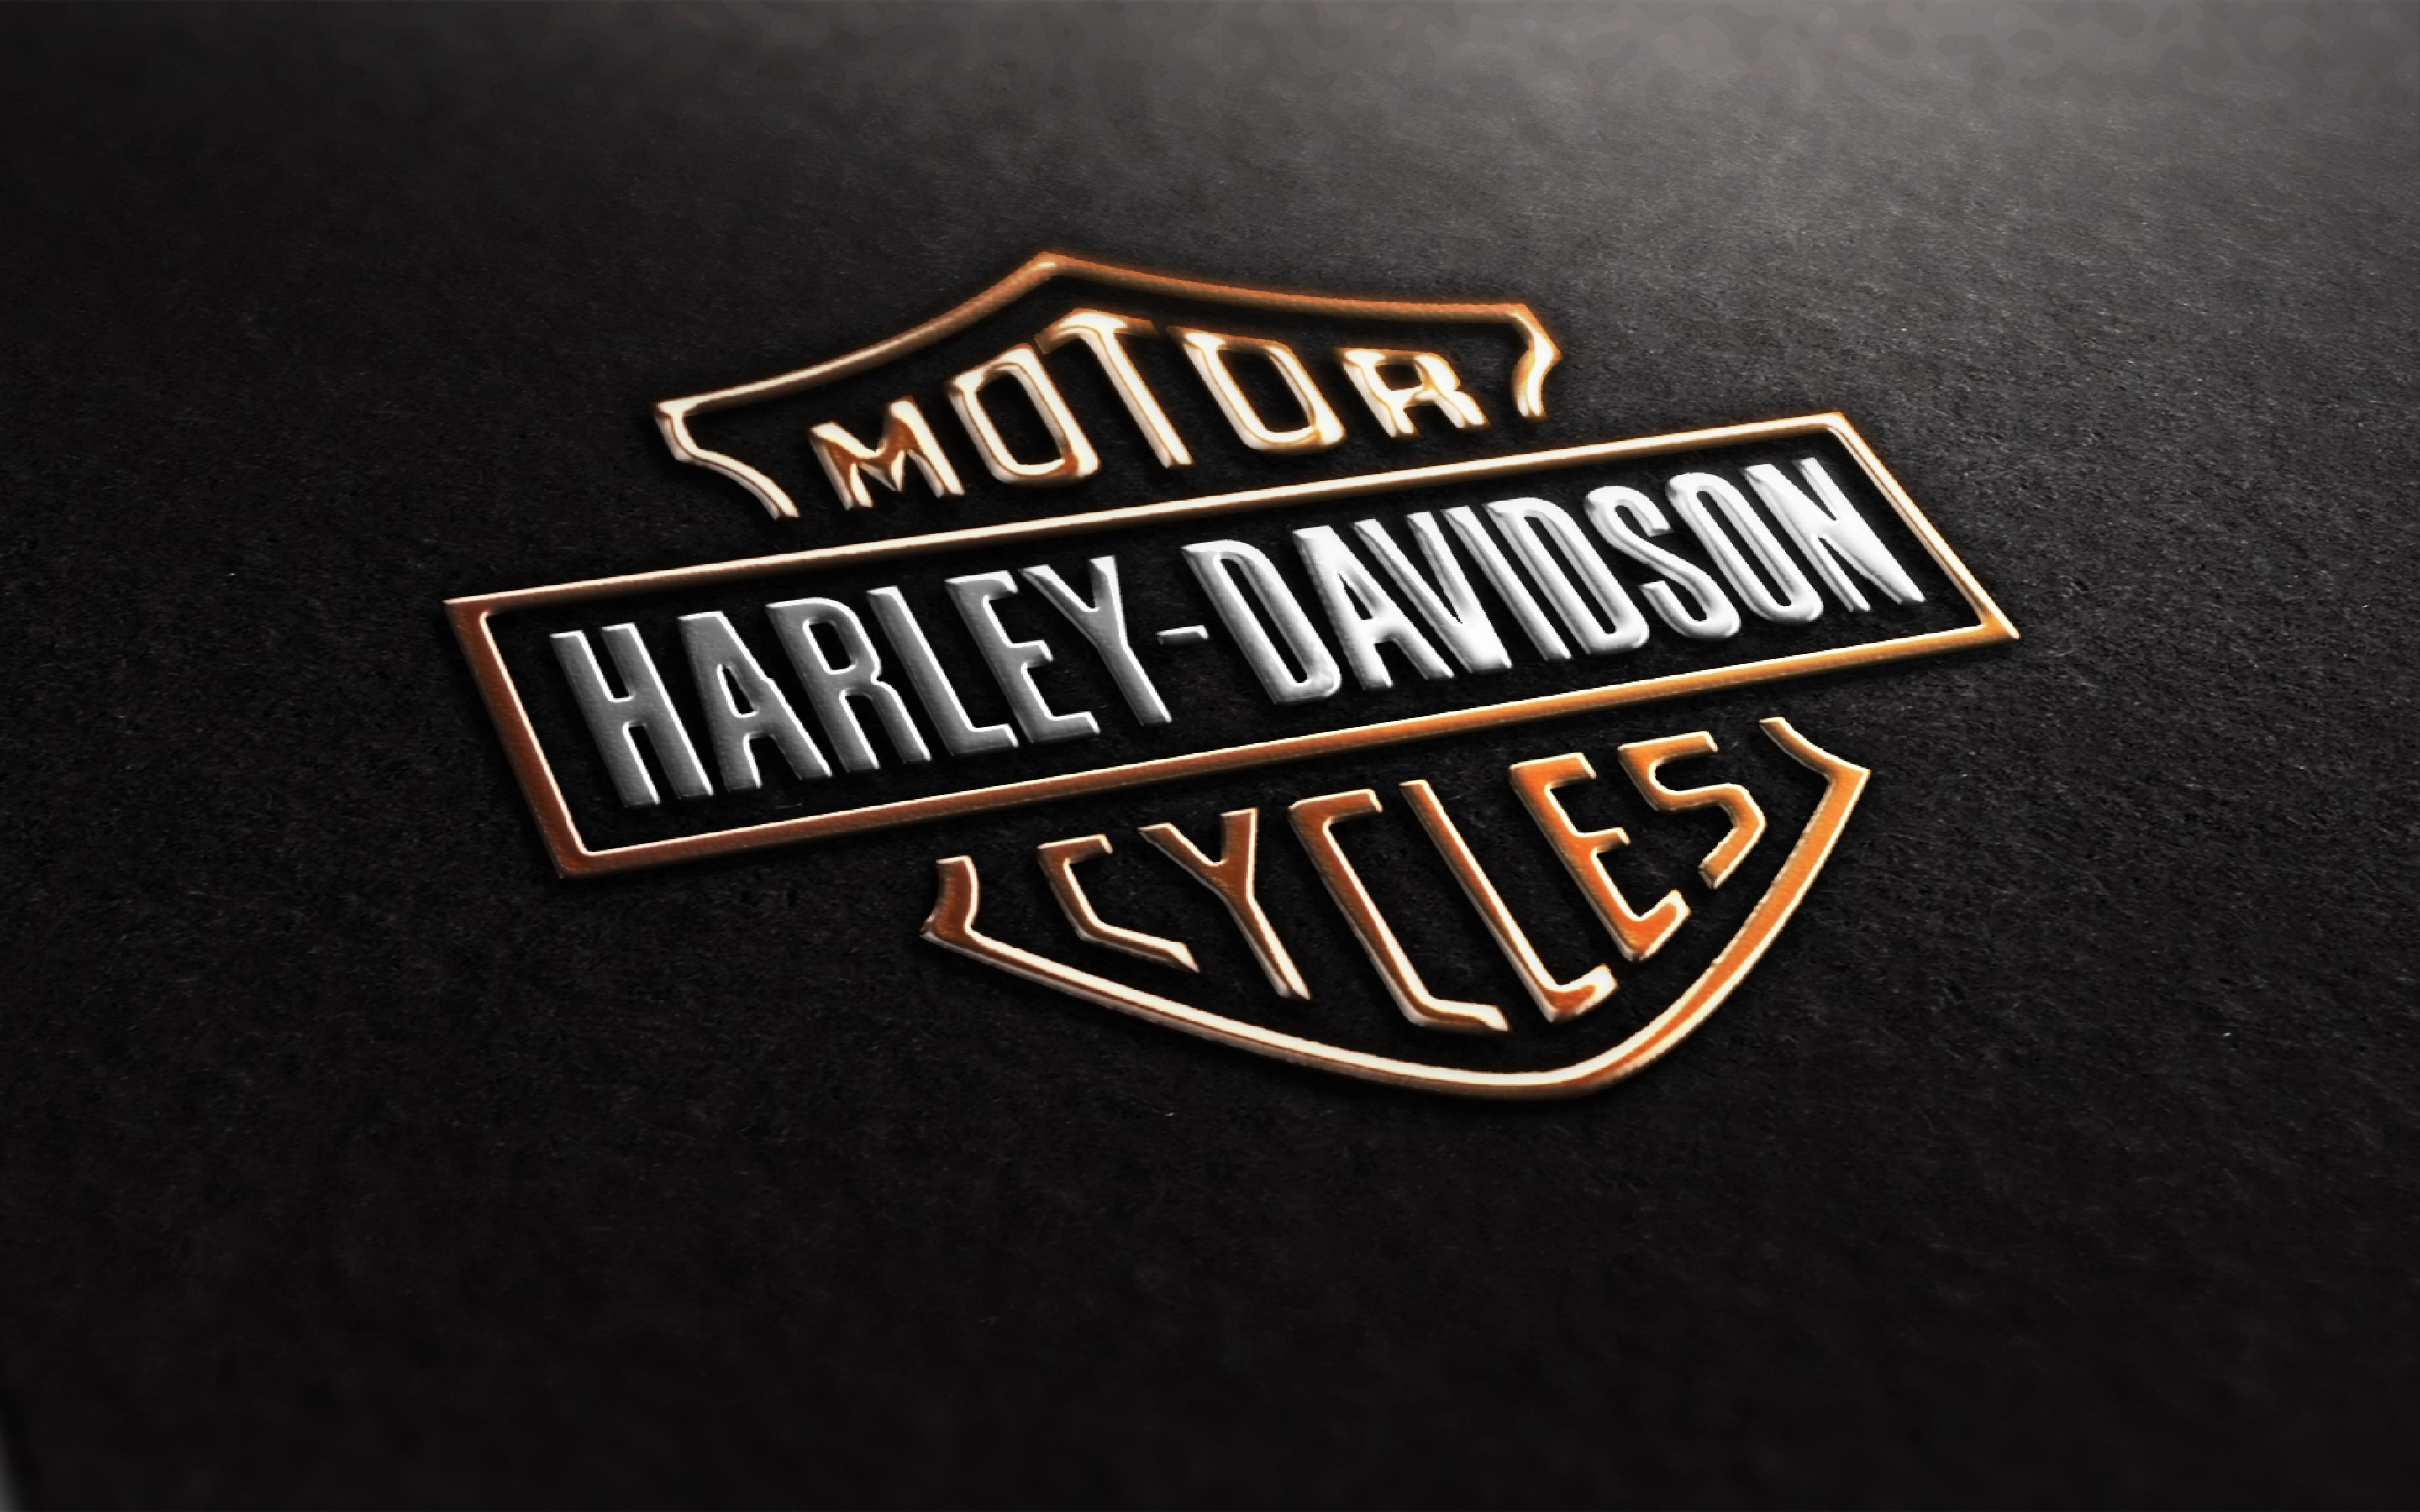 Harley Davidson Logo Motorcycle Wallpaper Wide 10715 Wallpaper High 2880x1800